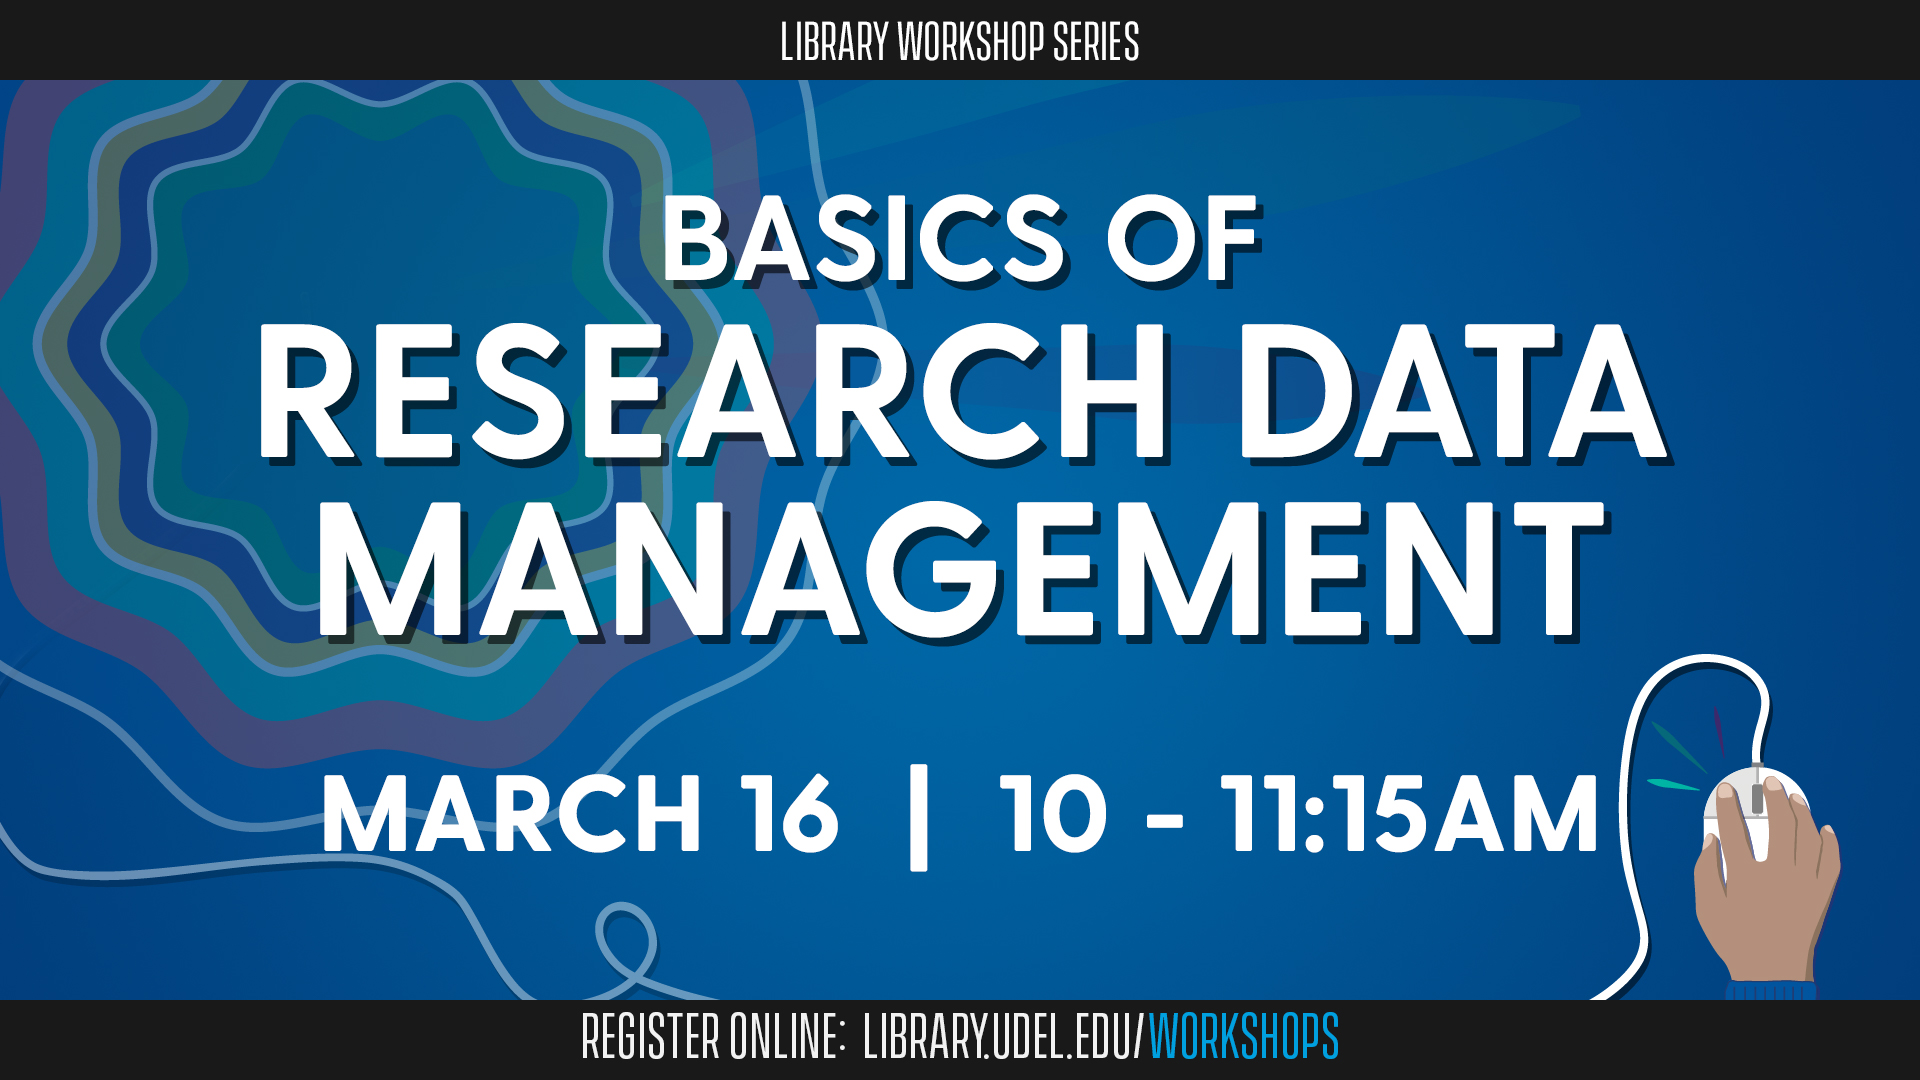 Basics of Research Data Management